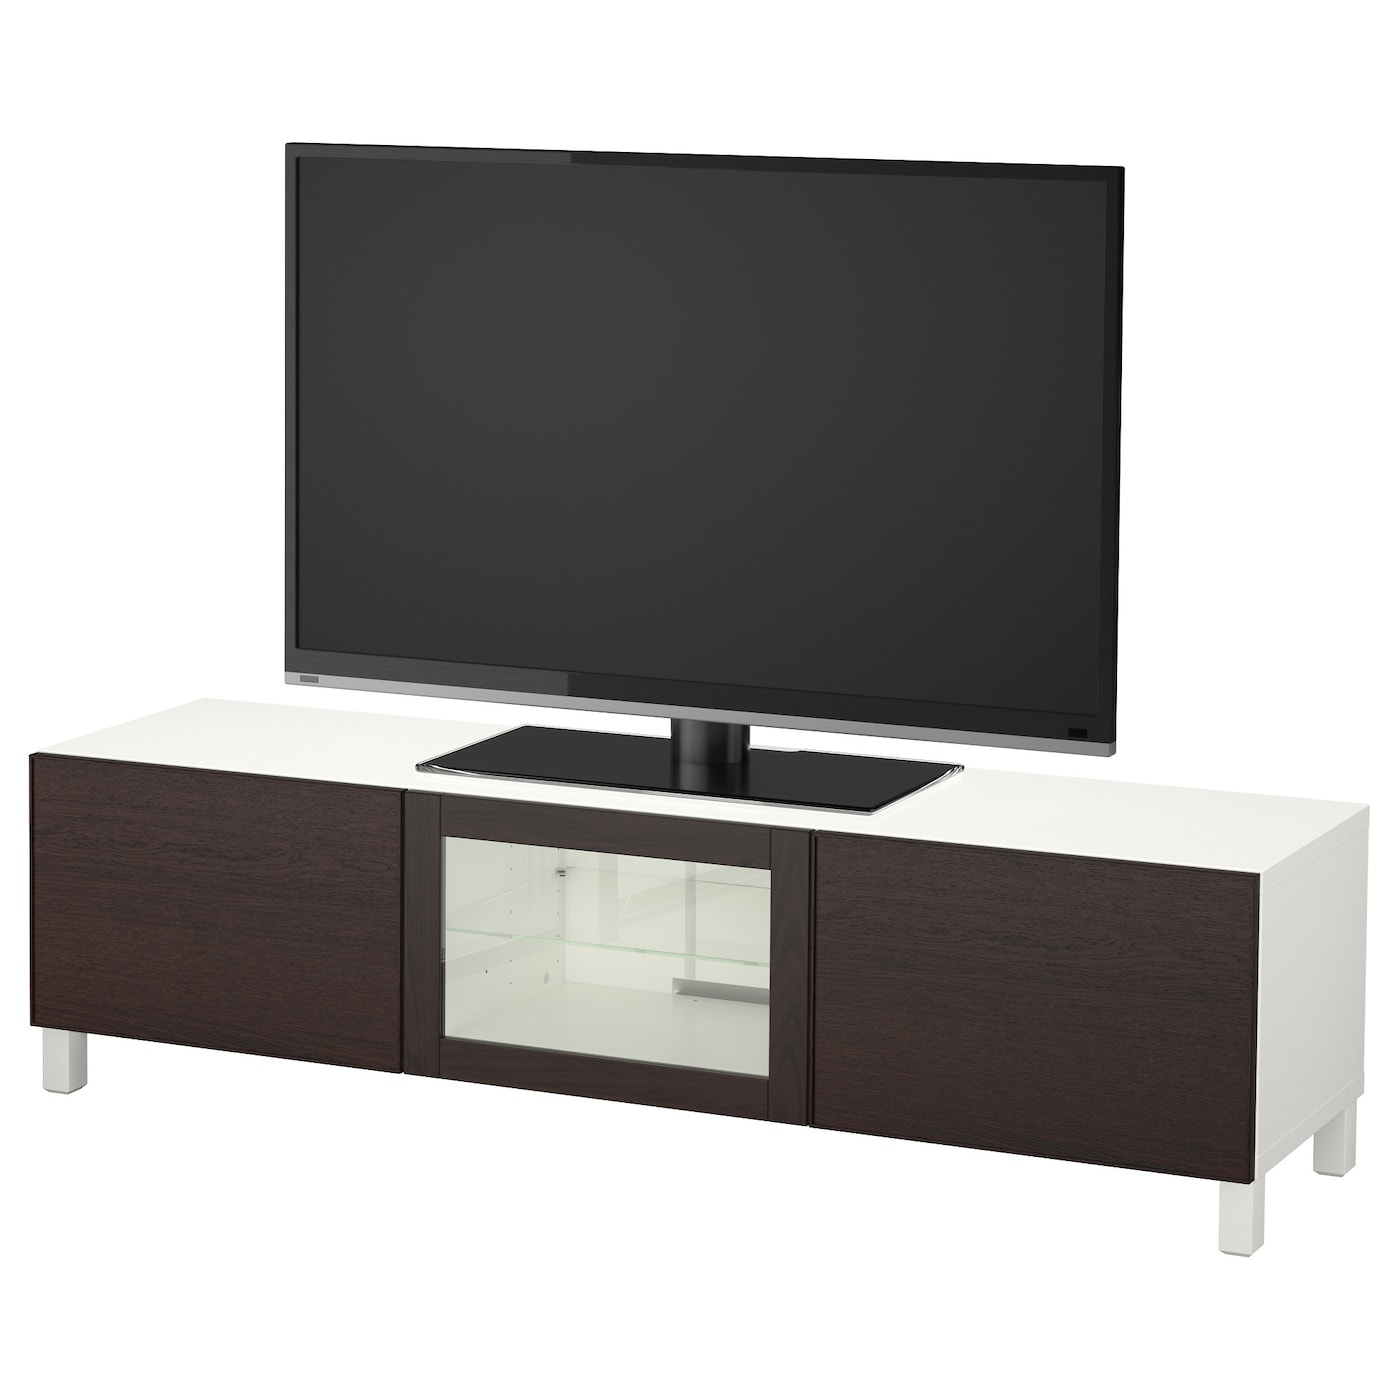 IKEA BESTÅ TV bench with drawers and door